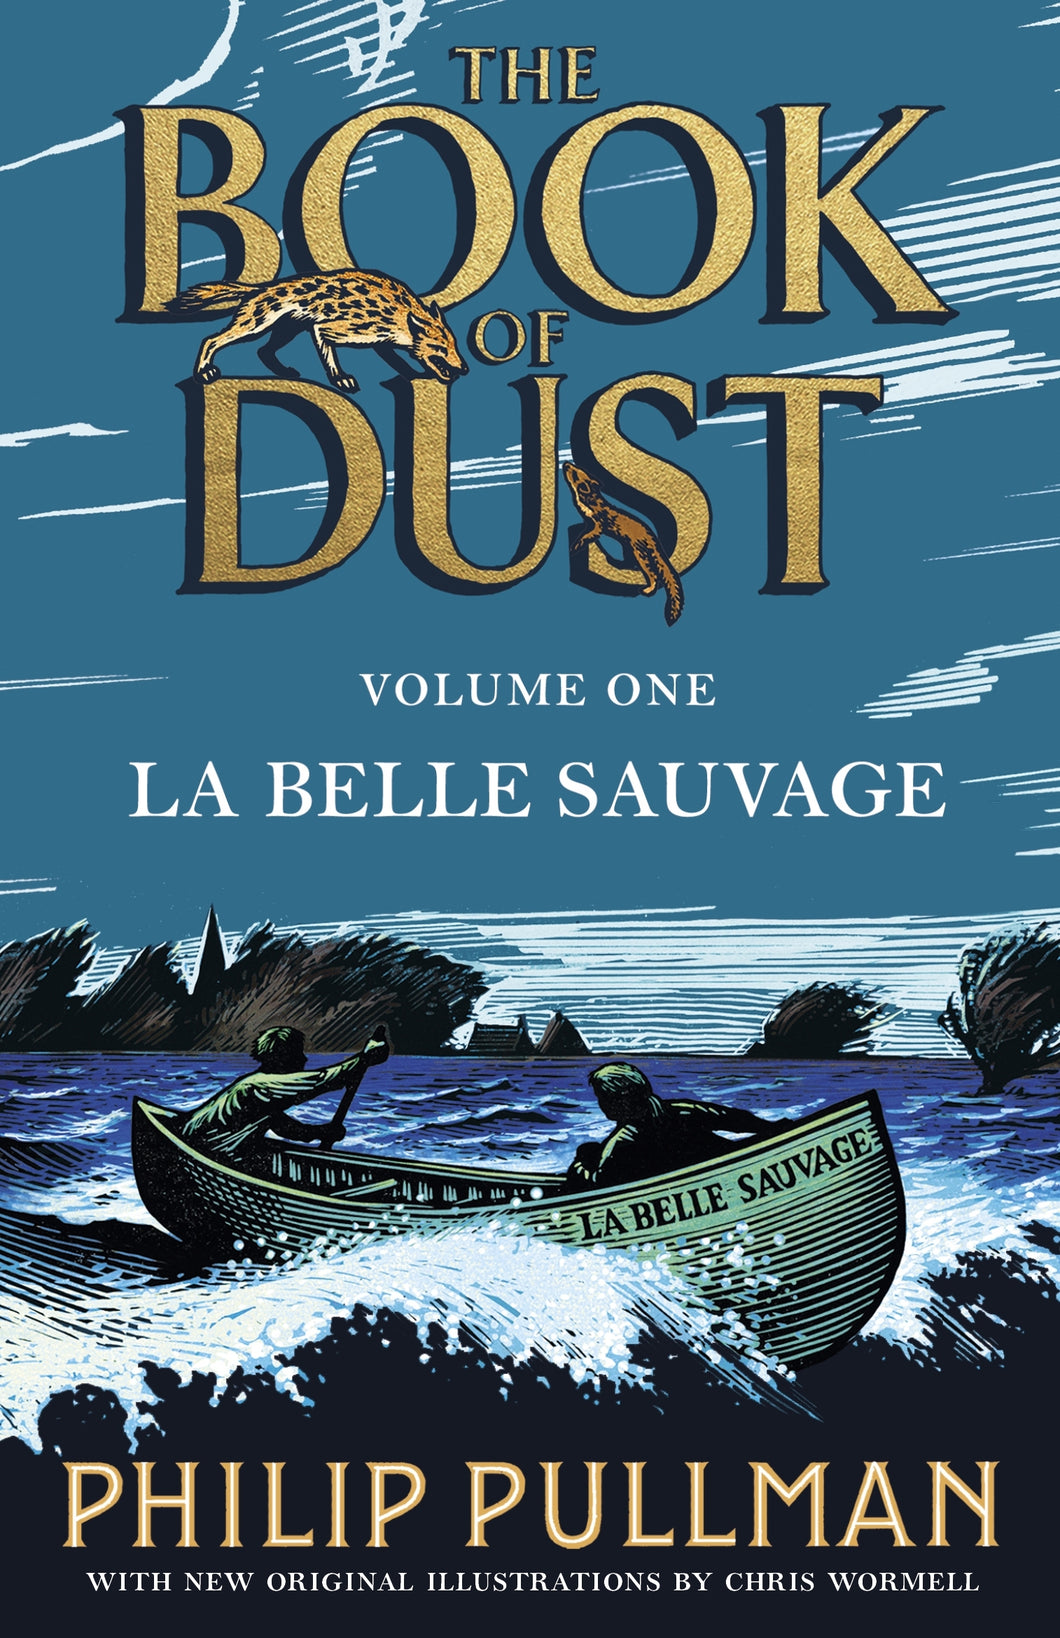 Book of Dust Volume One, La Belle Sauvage by Philip Pullman